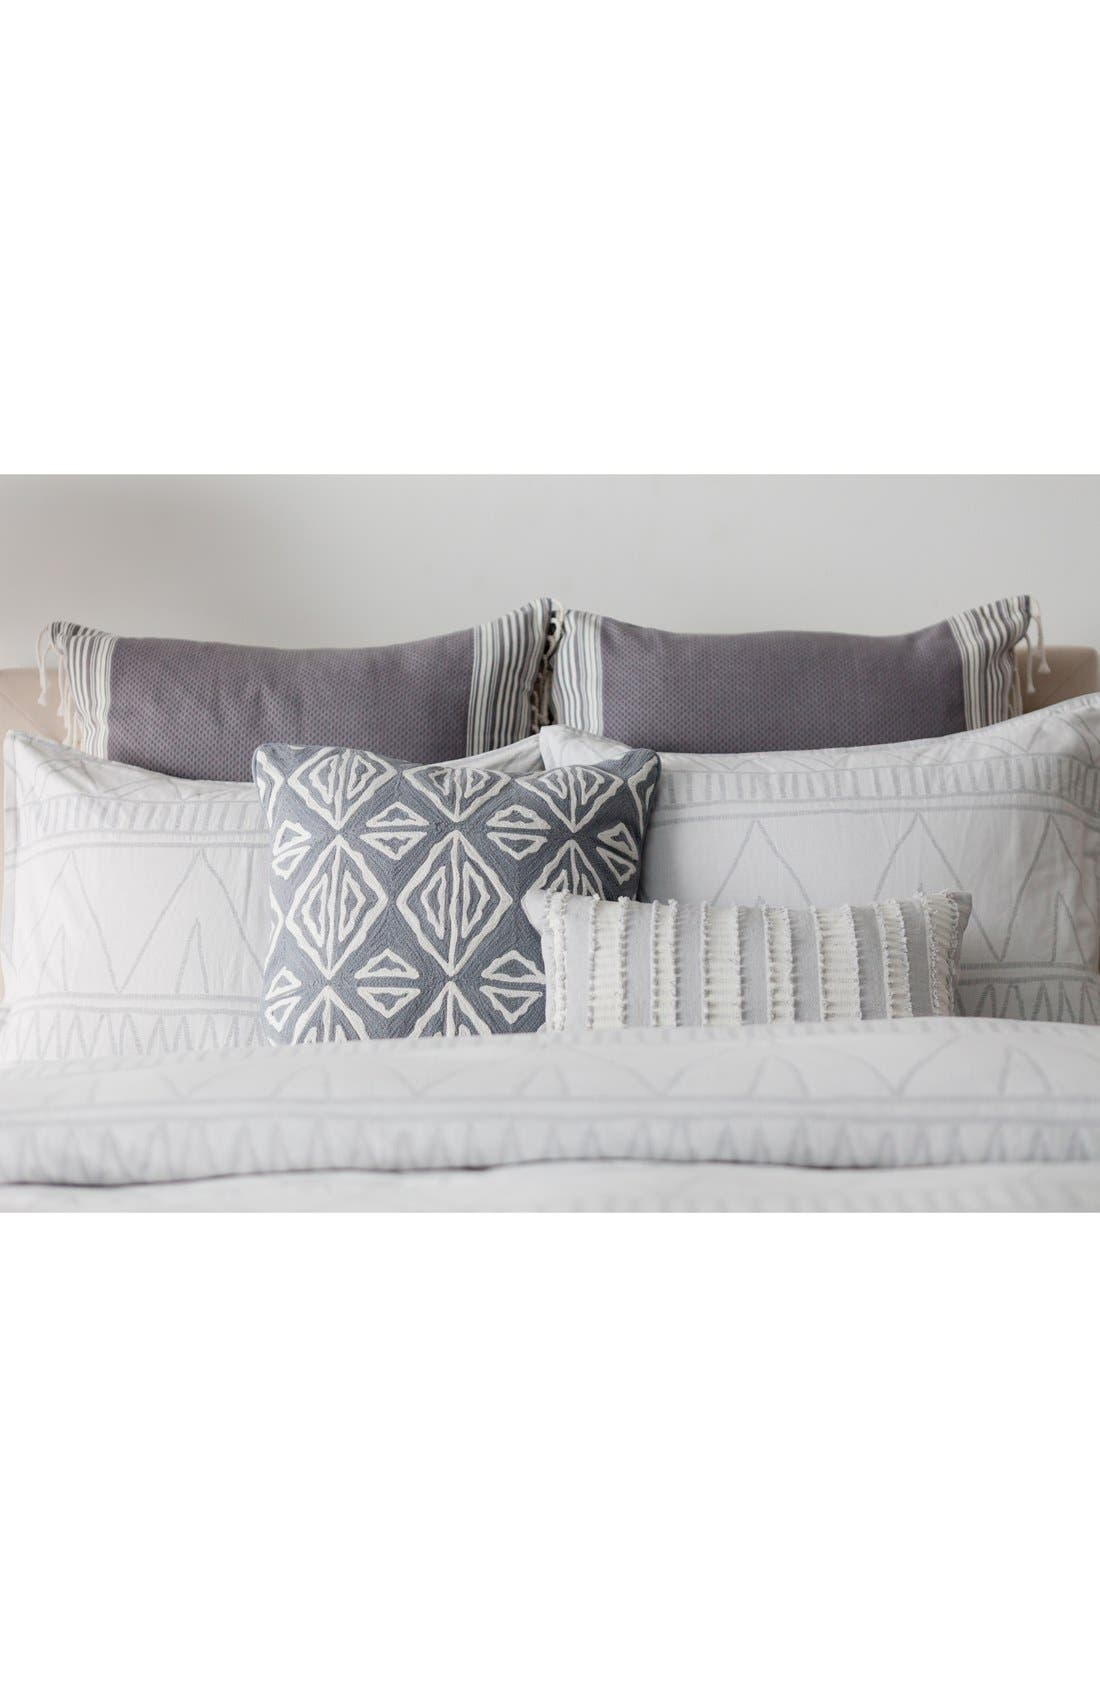 'Moroccan Geo' Crewel Embroidered Pillow,                             Alternate thumbnail 3, color,                             Grey